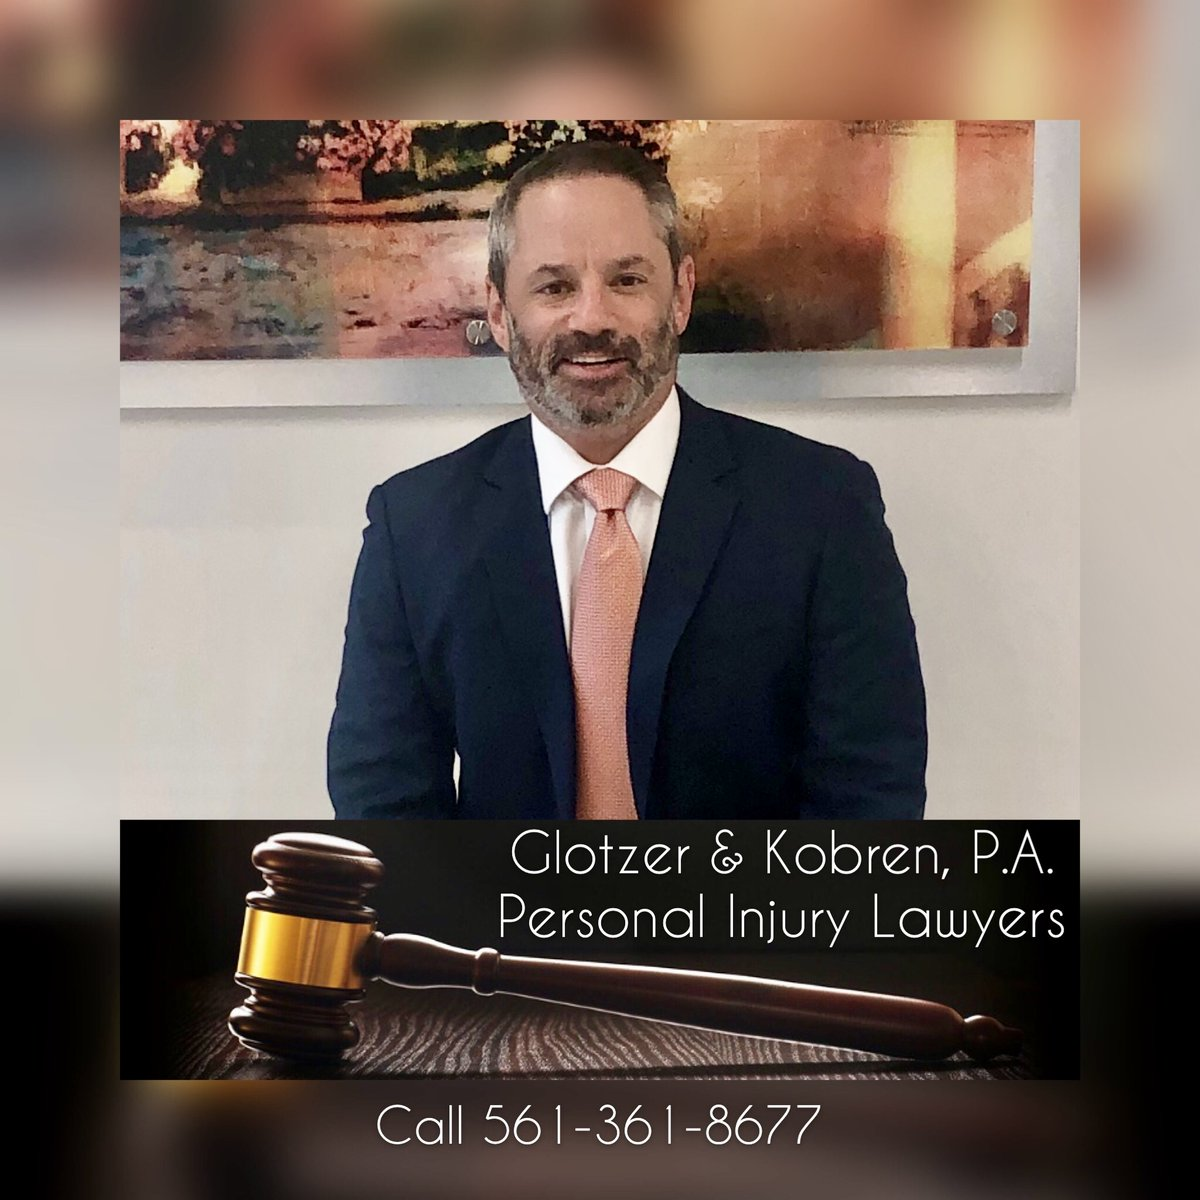 Helpful. Knowledgeable. Approachable. Let our experienced lawyers -- like Matthew Kobren, Esq. pictured here -- help you.  If you or a loved one has been injured, don't hesitate to call us.   #personalinjury #Lawyers #SouthFL #attorney #ThursdayThoughts